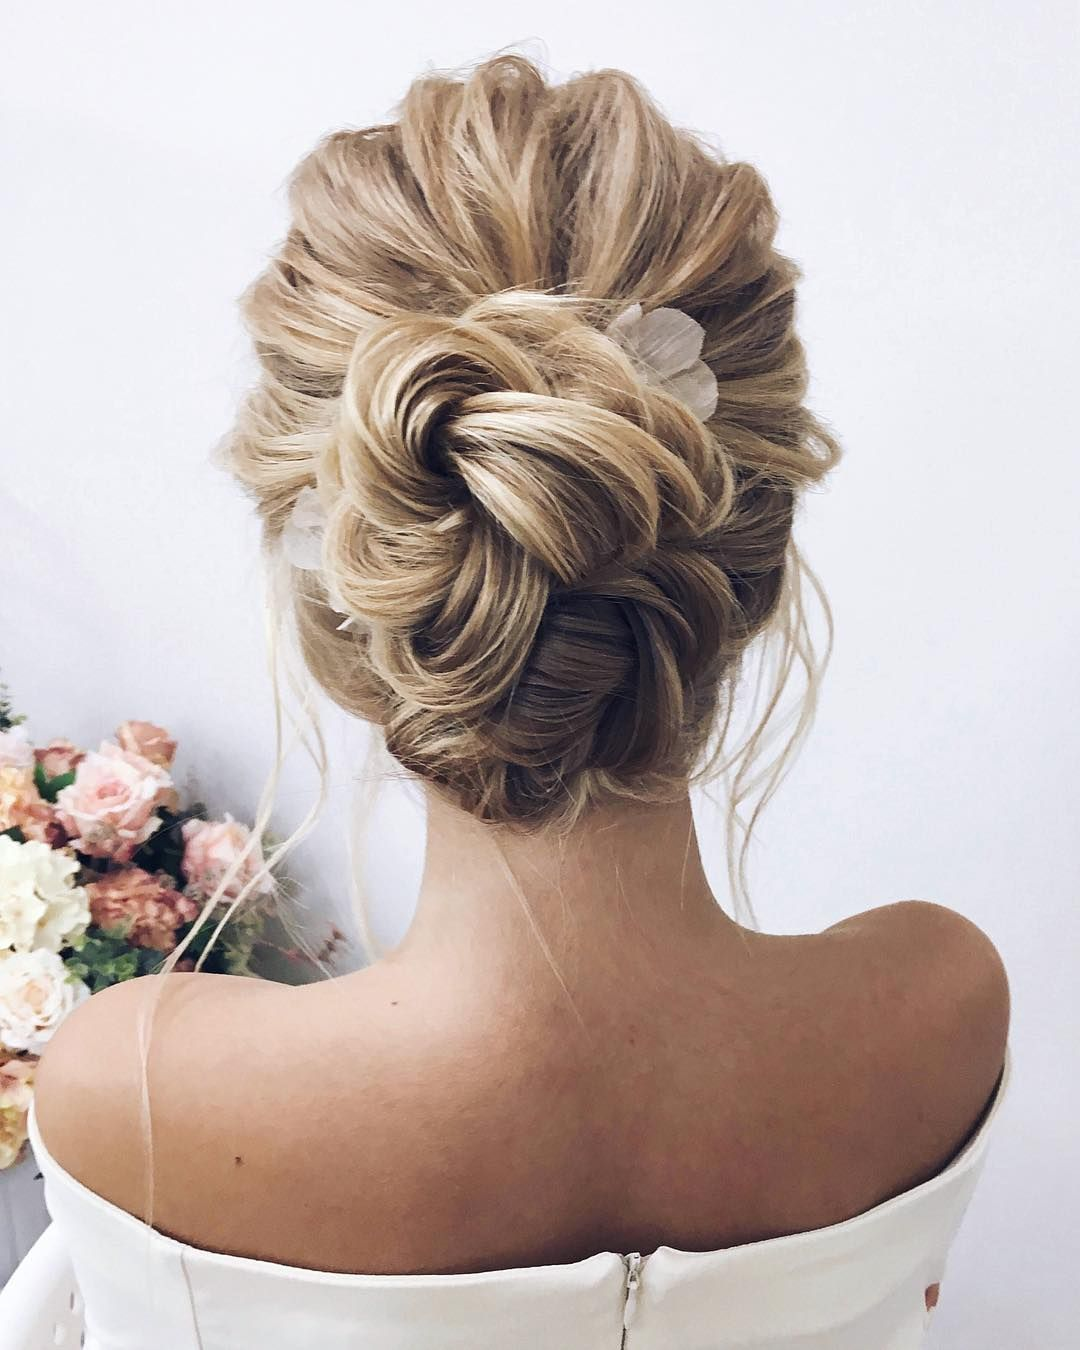 55 amazing updo hairstyle with the wow factor | elegant